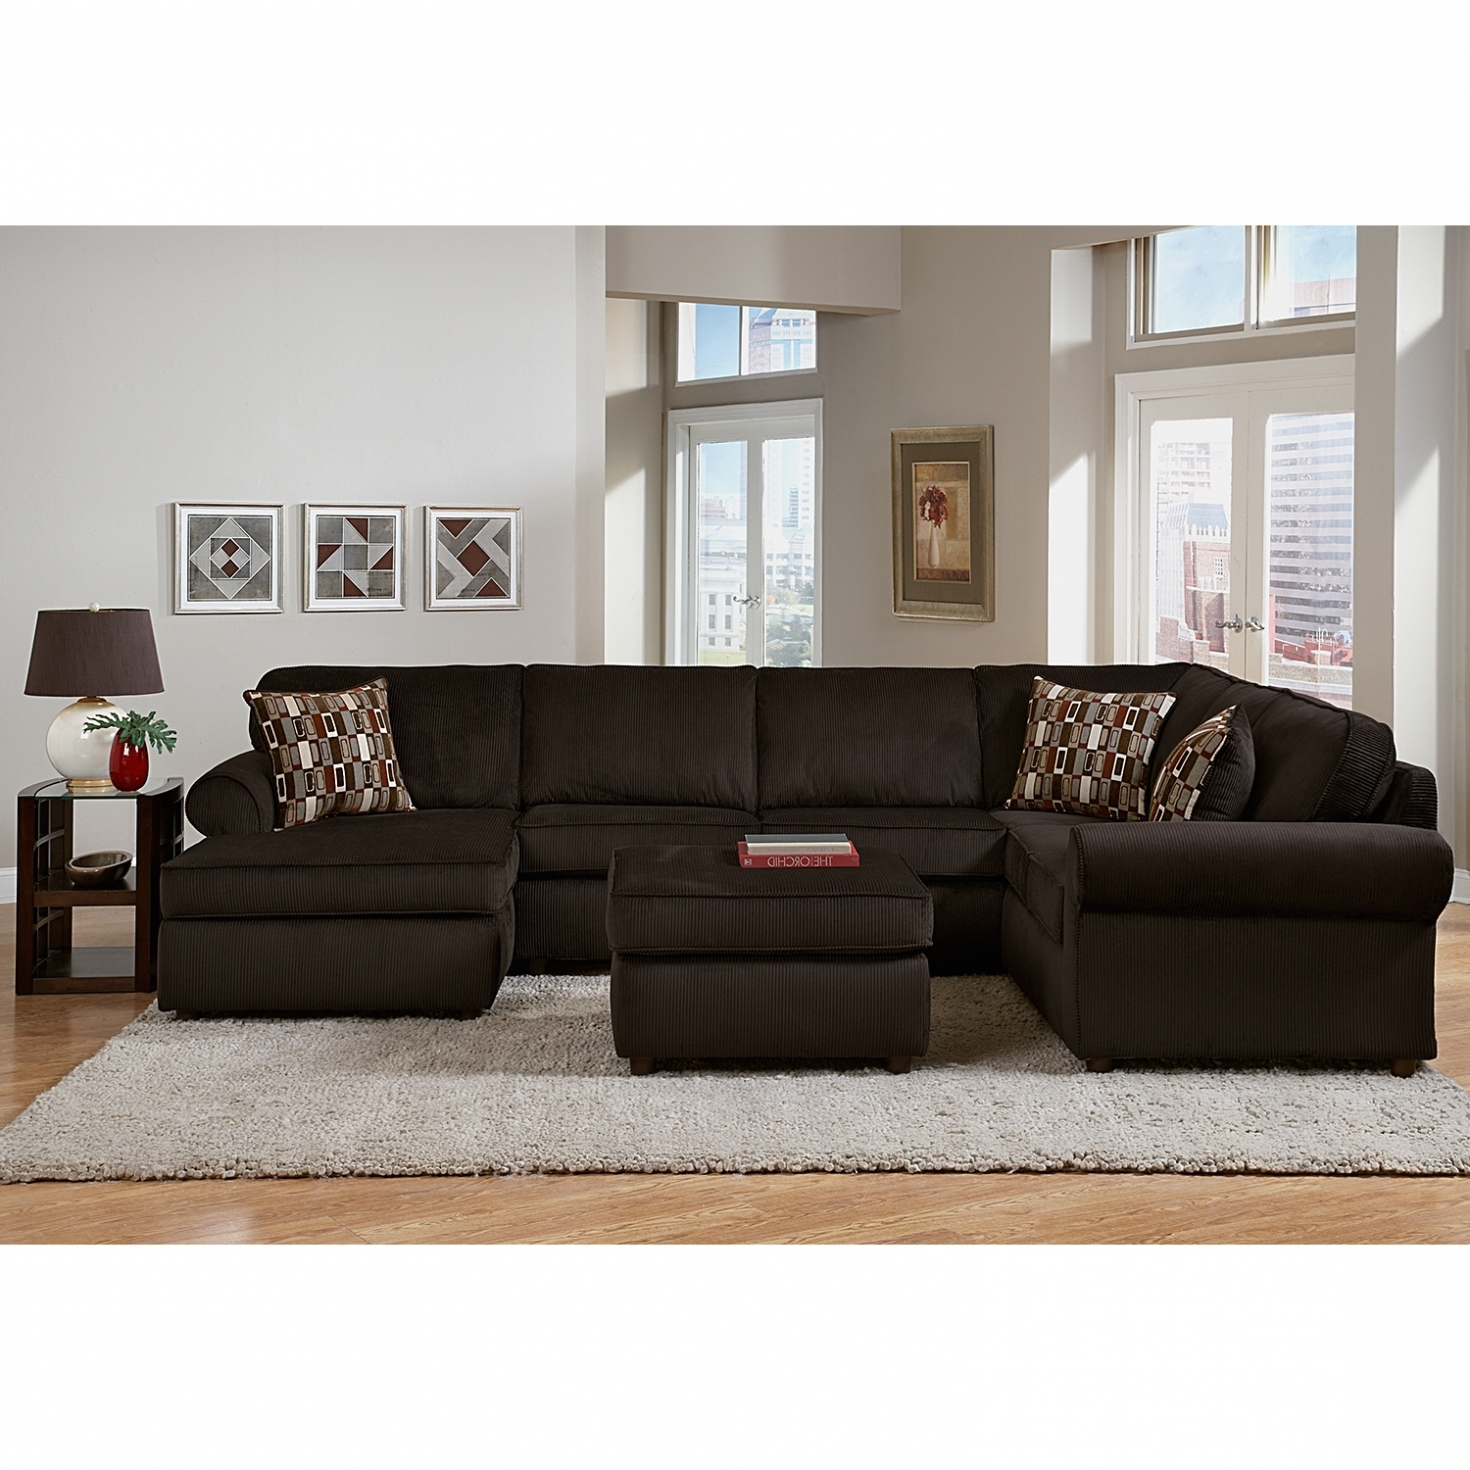 20 Inspirations Of Value City Sectional Sofas